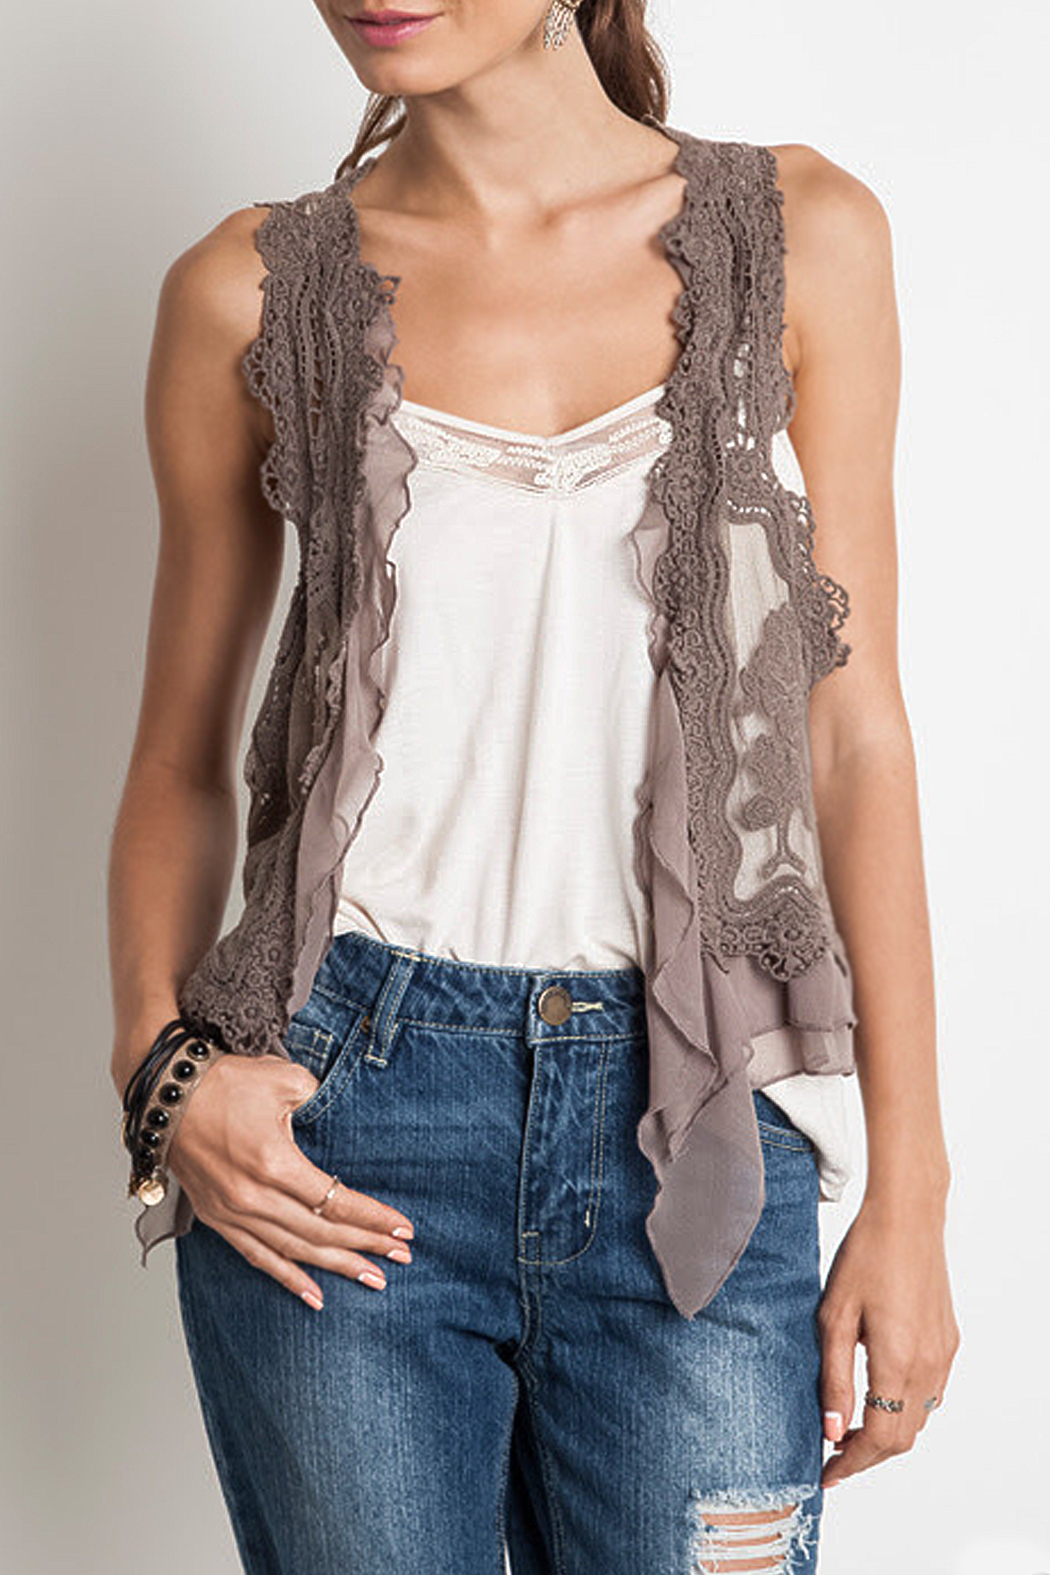 Umgee USA Knit Crochet Vest - Main Image